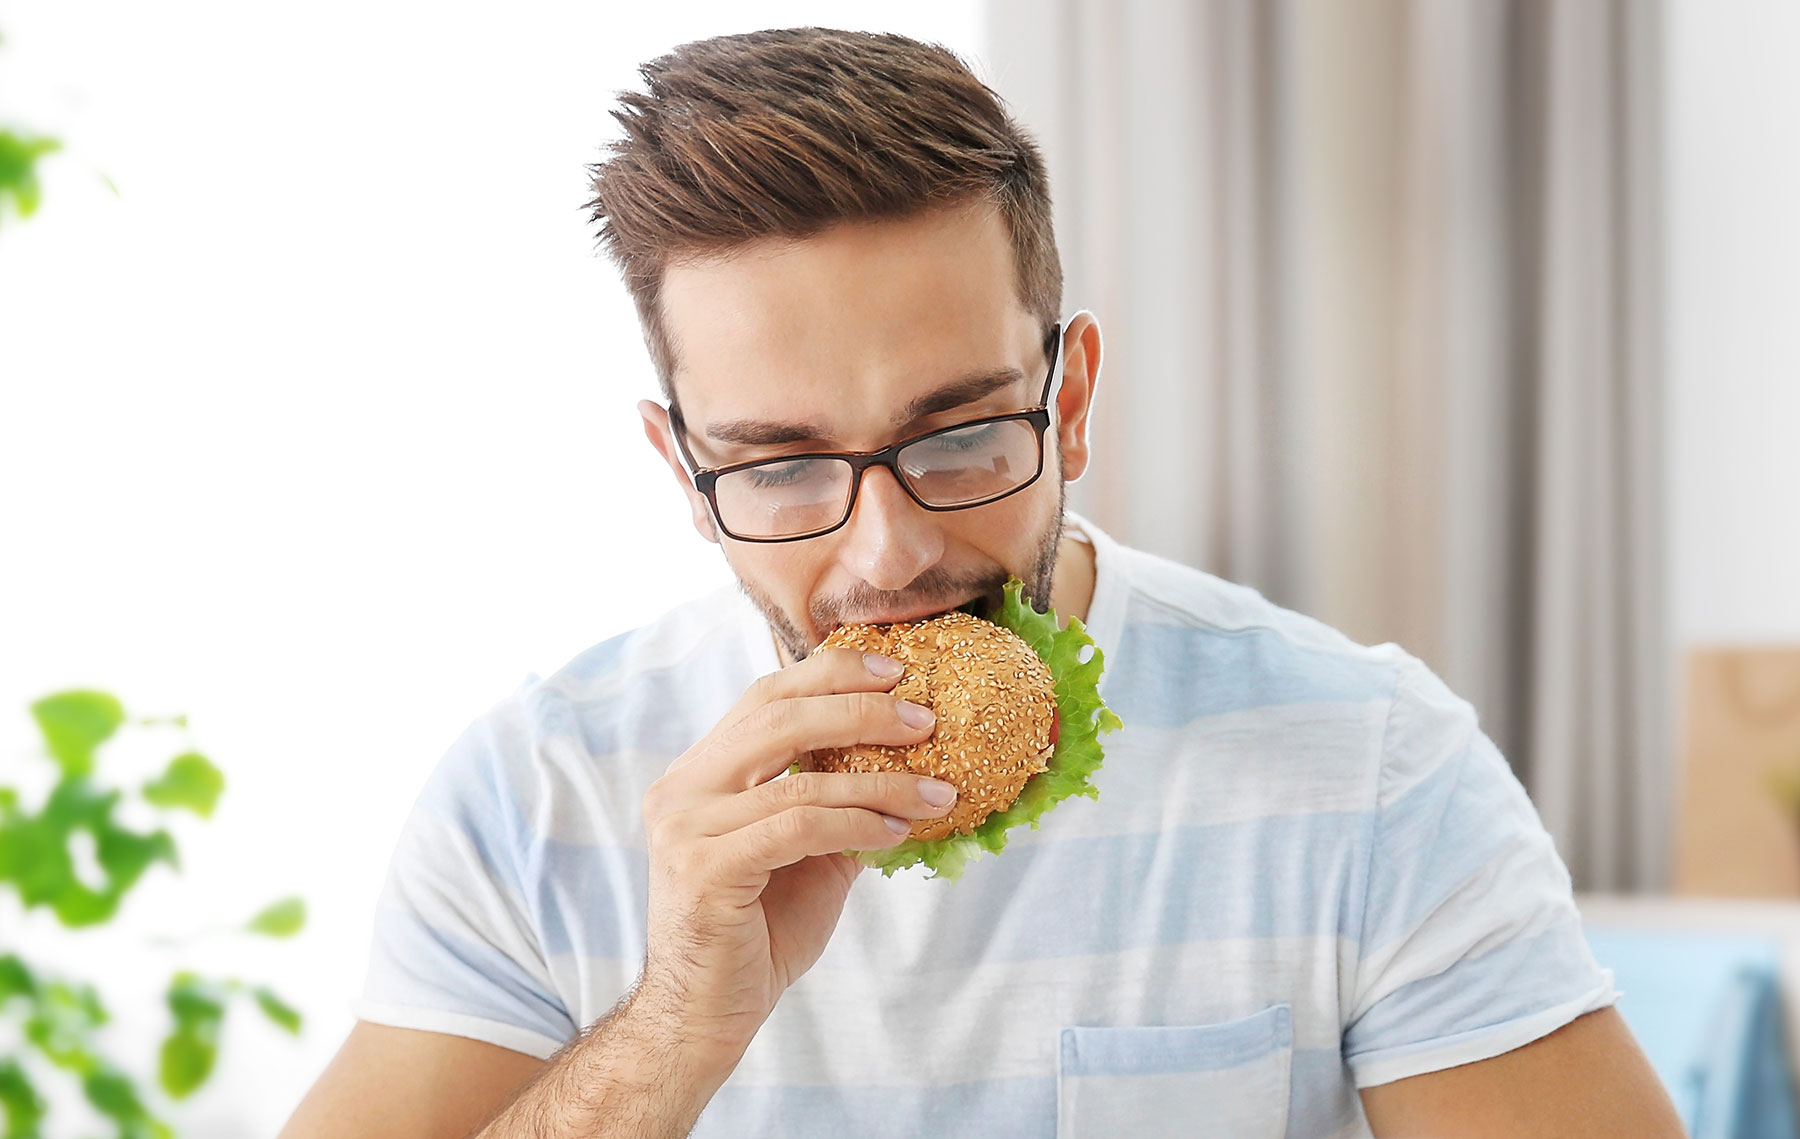 Image of person eating